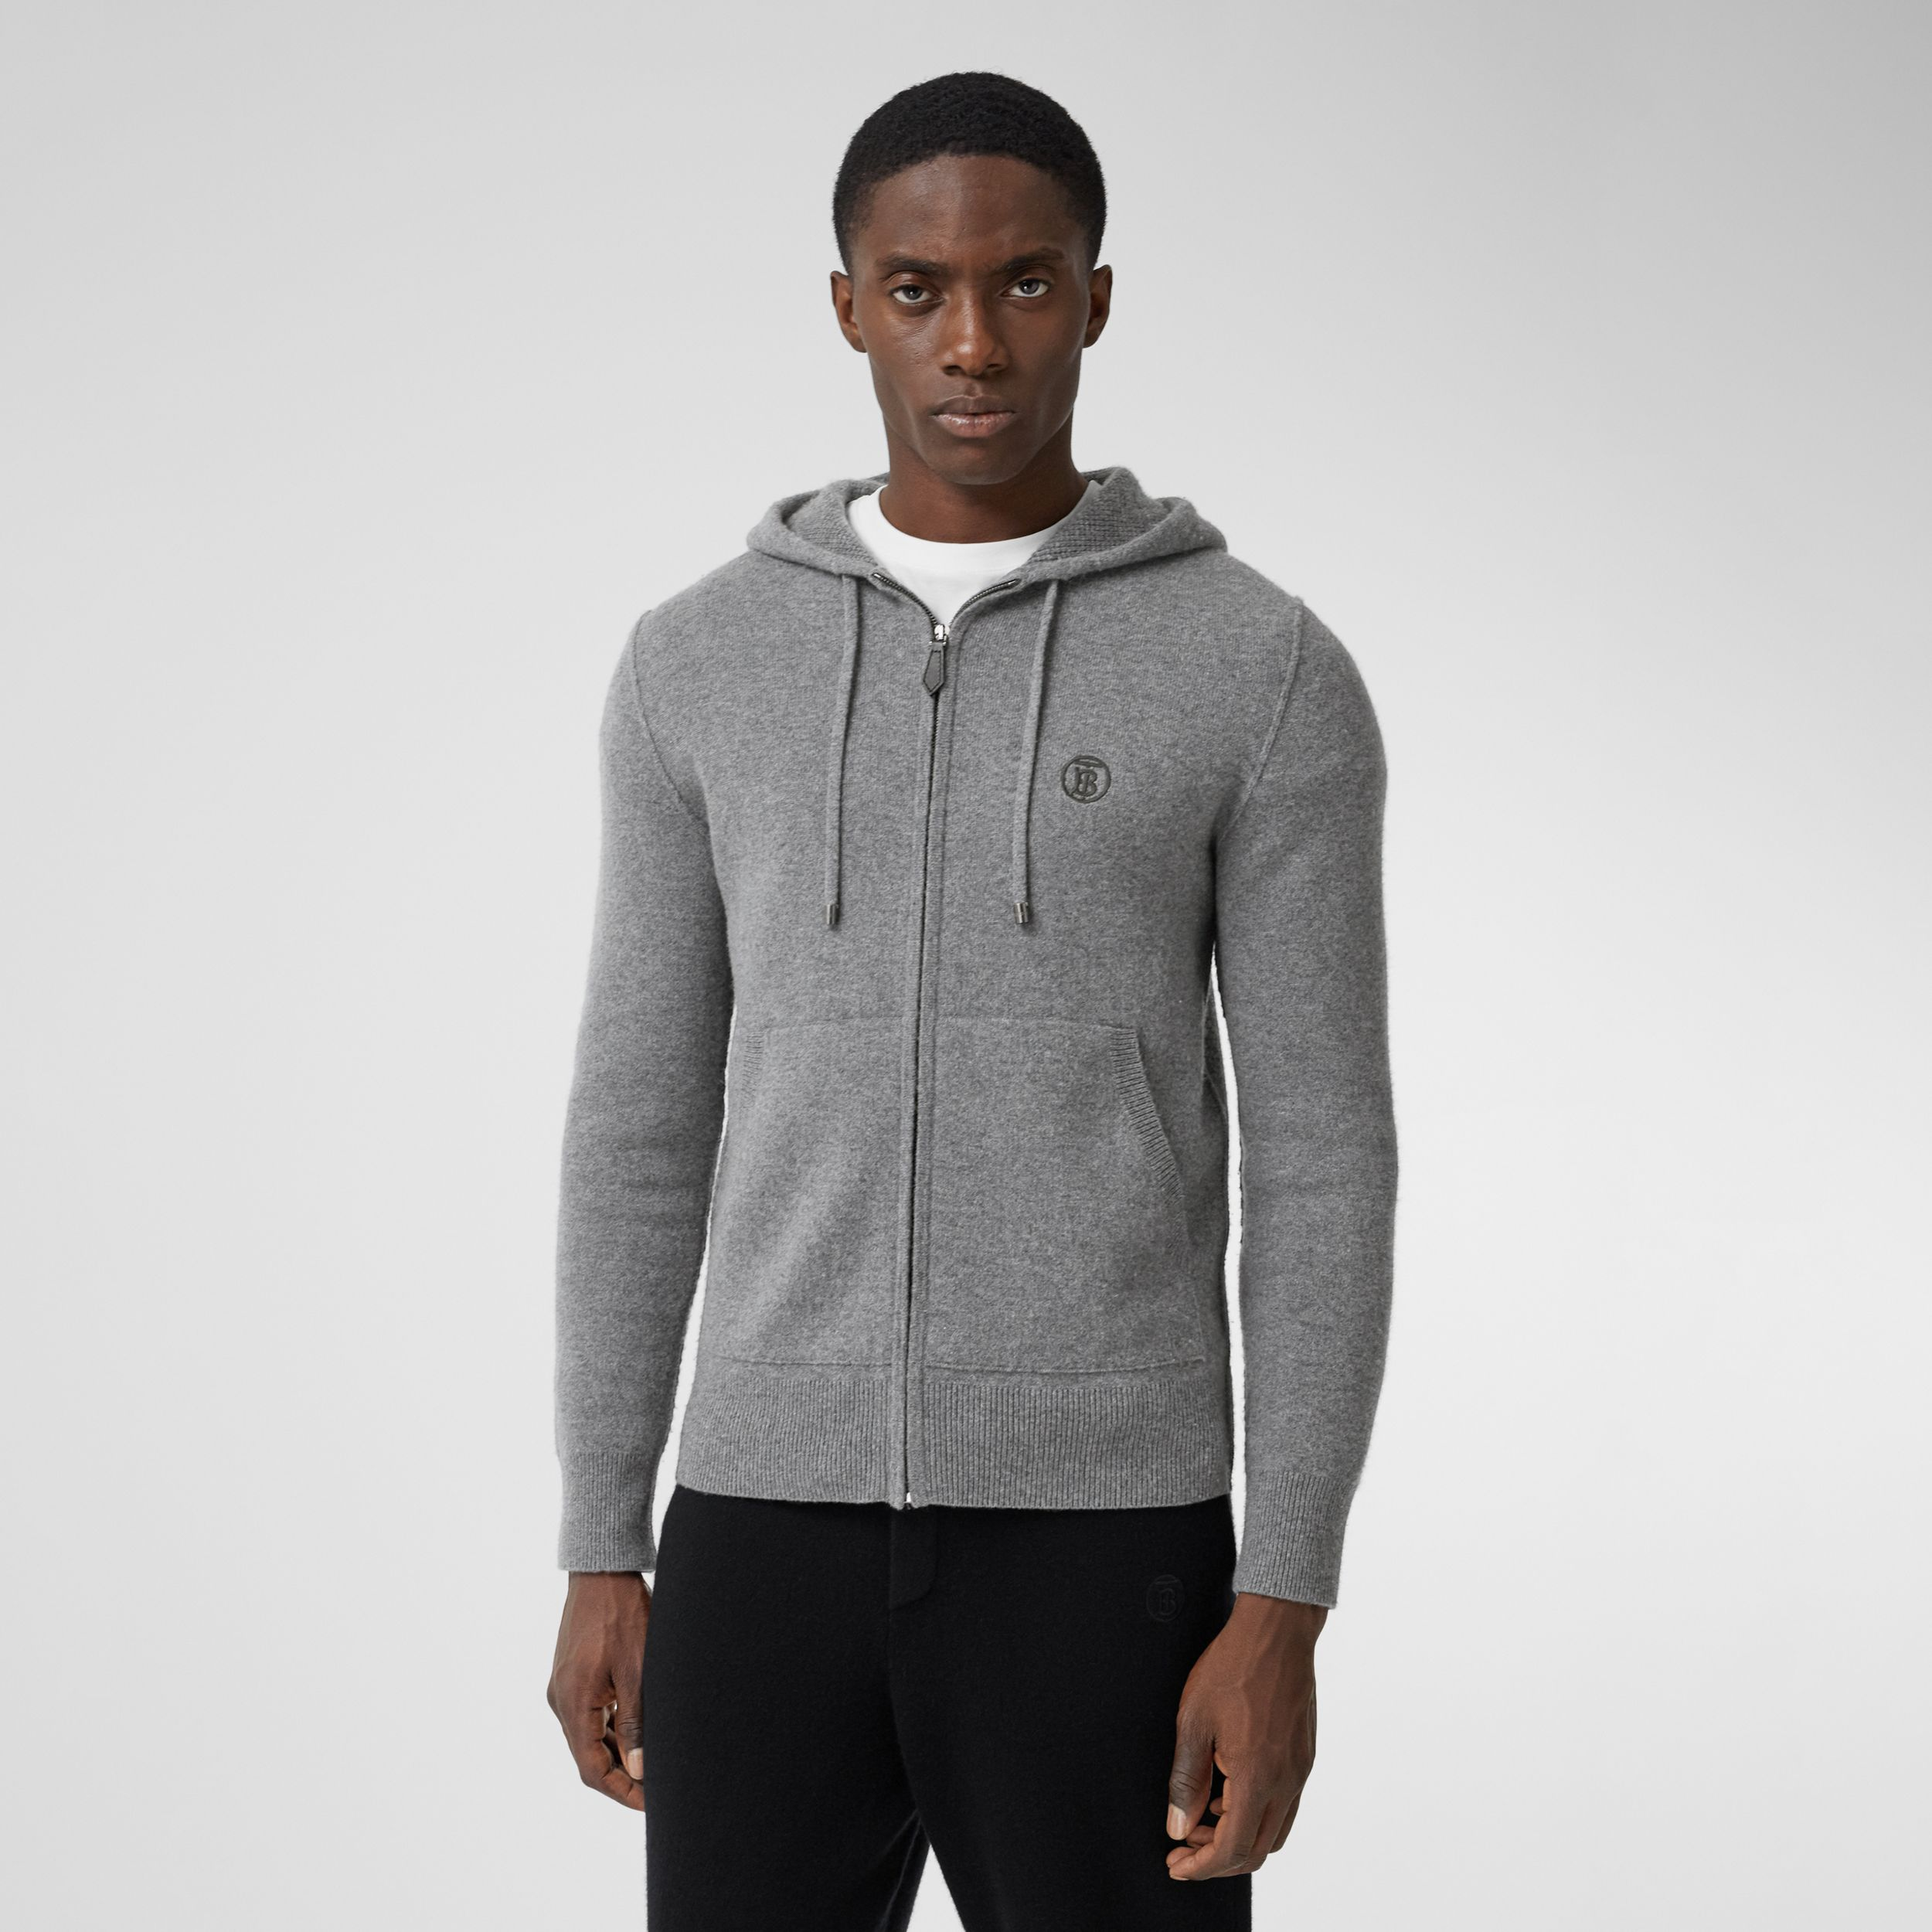 Monogram Motif Cashmere Blend Hooded Top in Mid Grey Melange - Men | Burberry Australia - 1